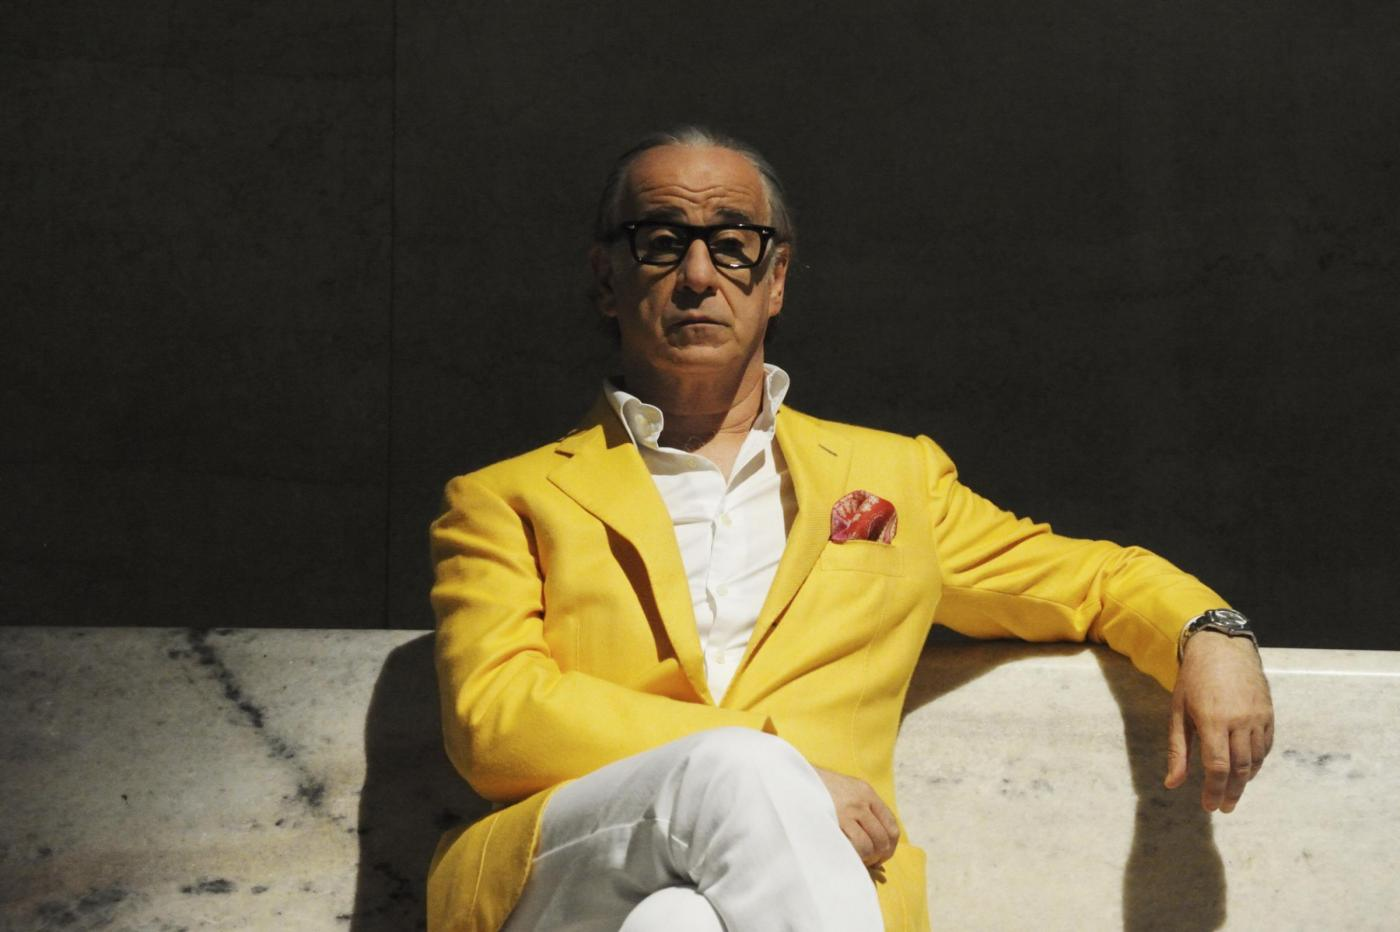 La storia di Paolo Sorrentino e Toni Servillo una magìa di marketing a risposta diretta!